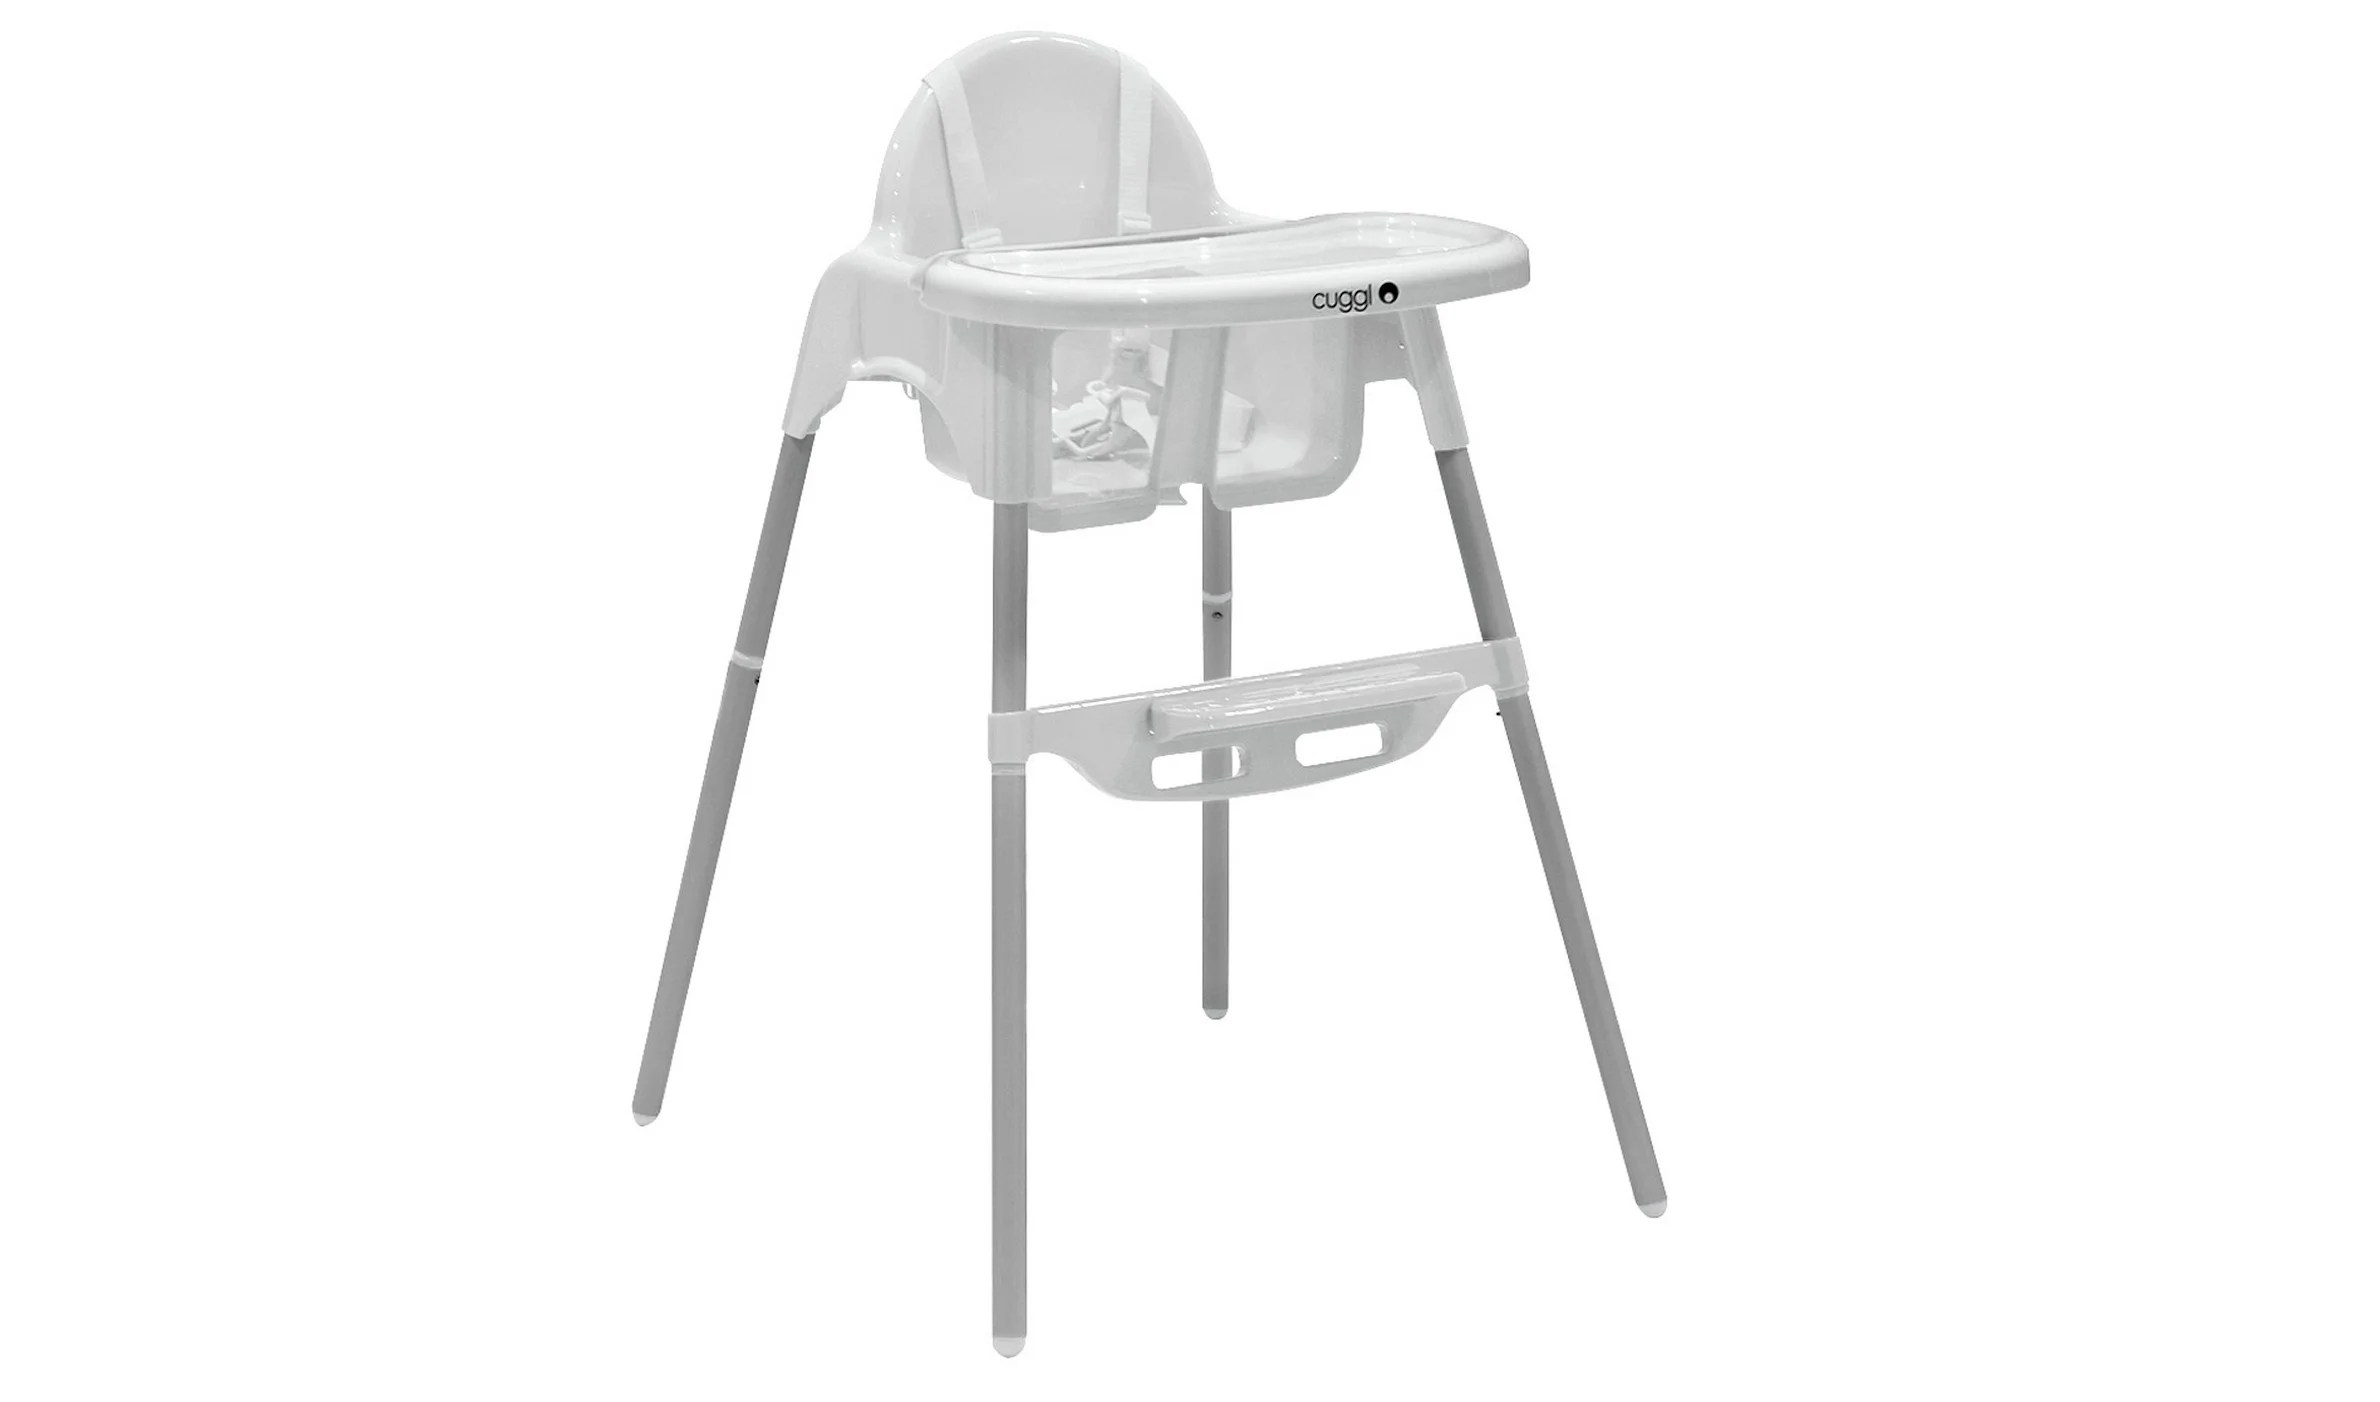 Egg Baby High Chair Best High Chairs The Best High Chairs From 20 Expert Reviews